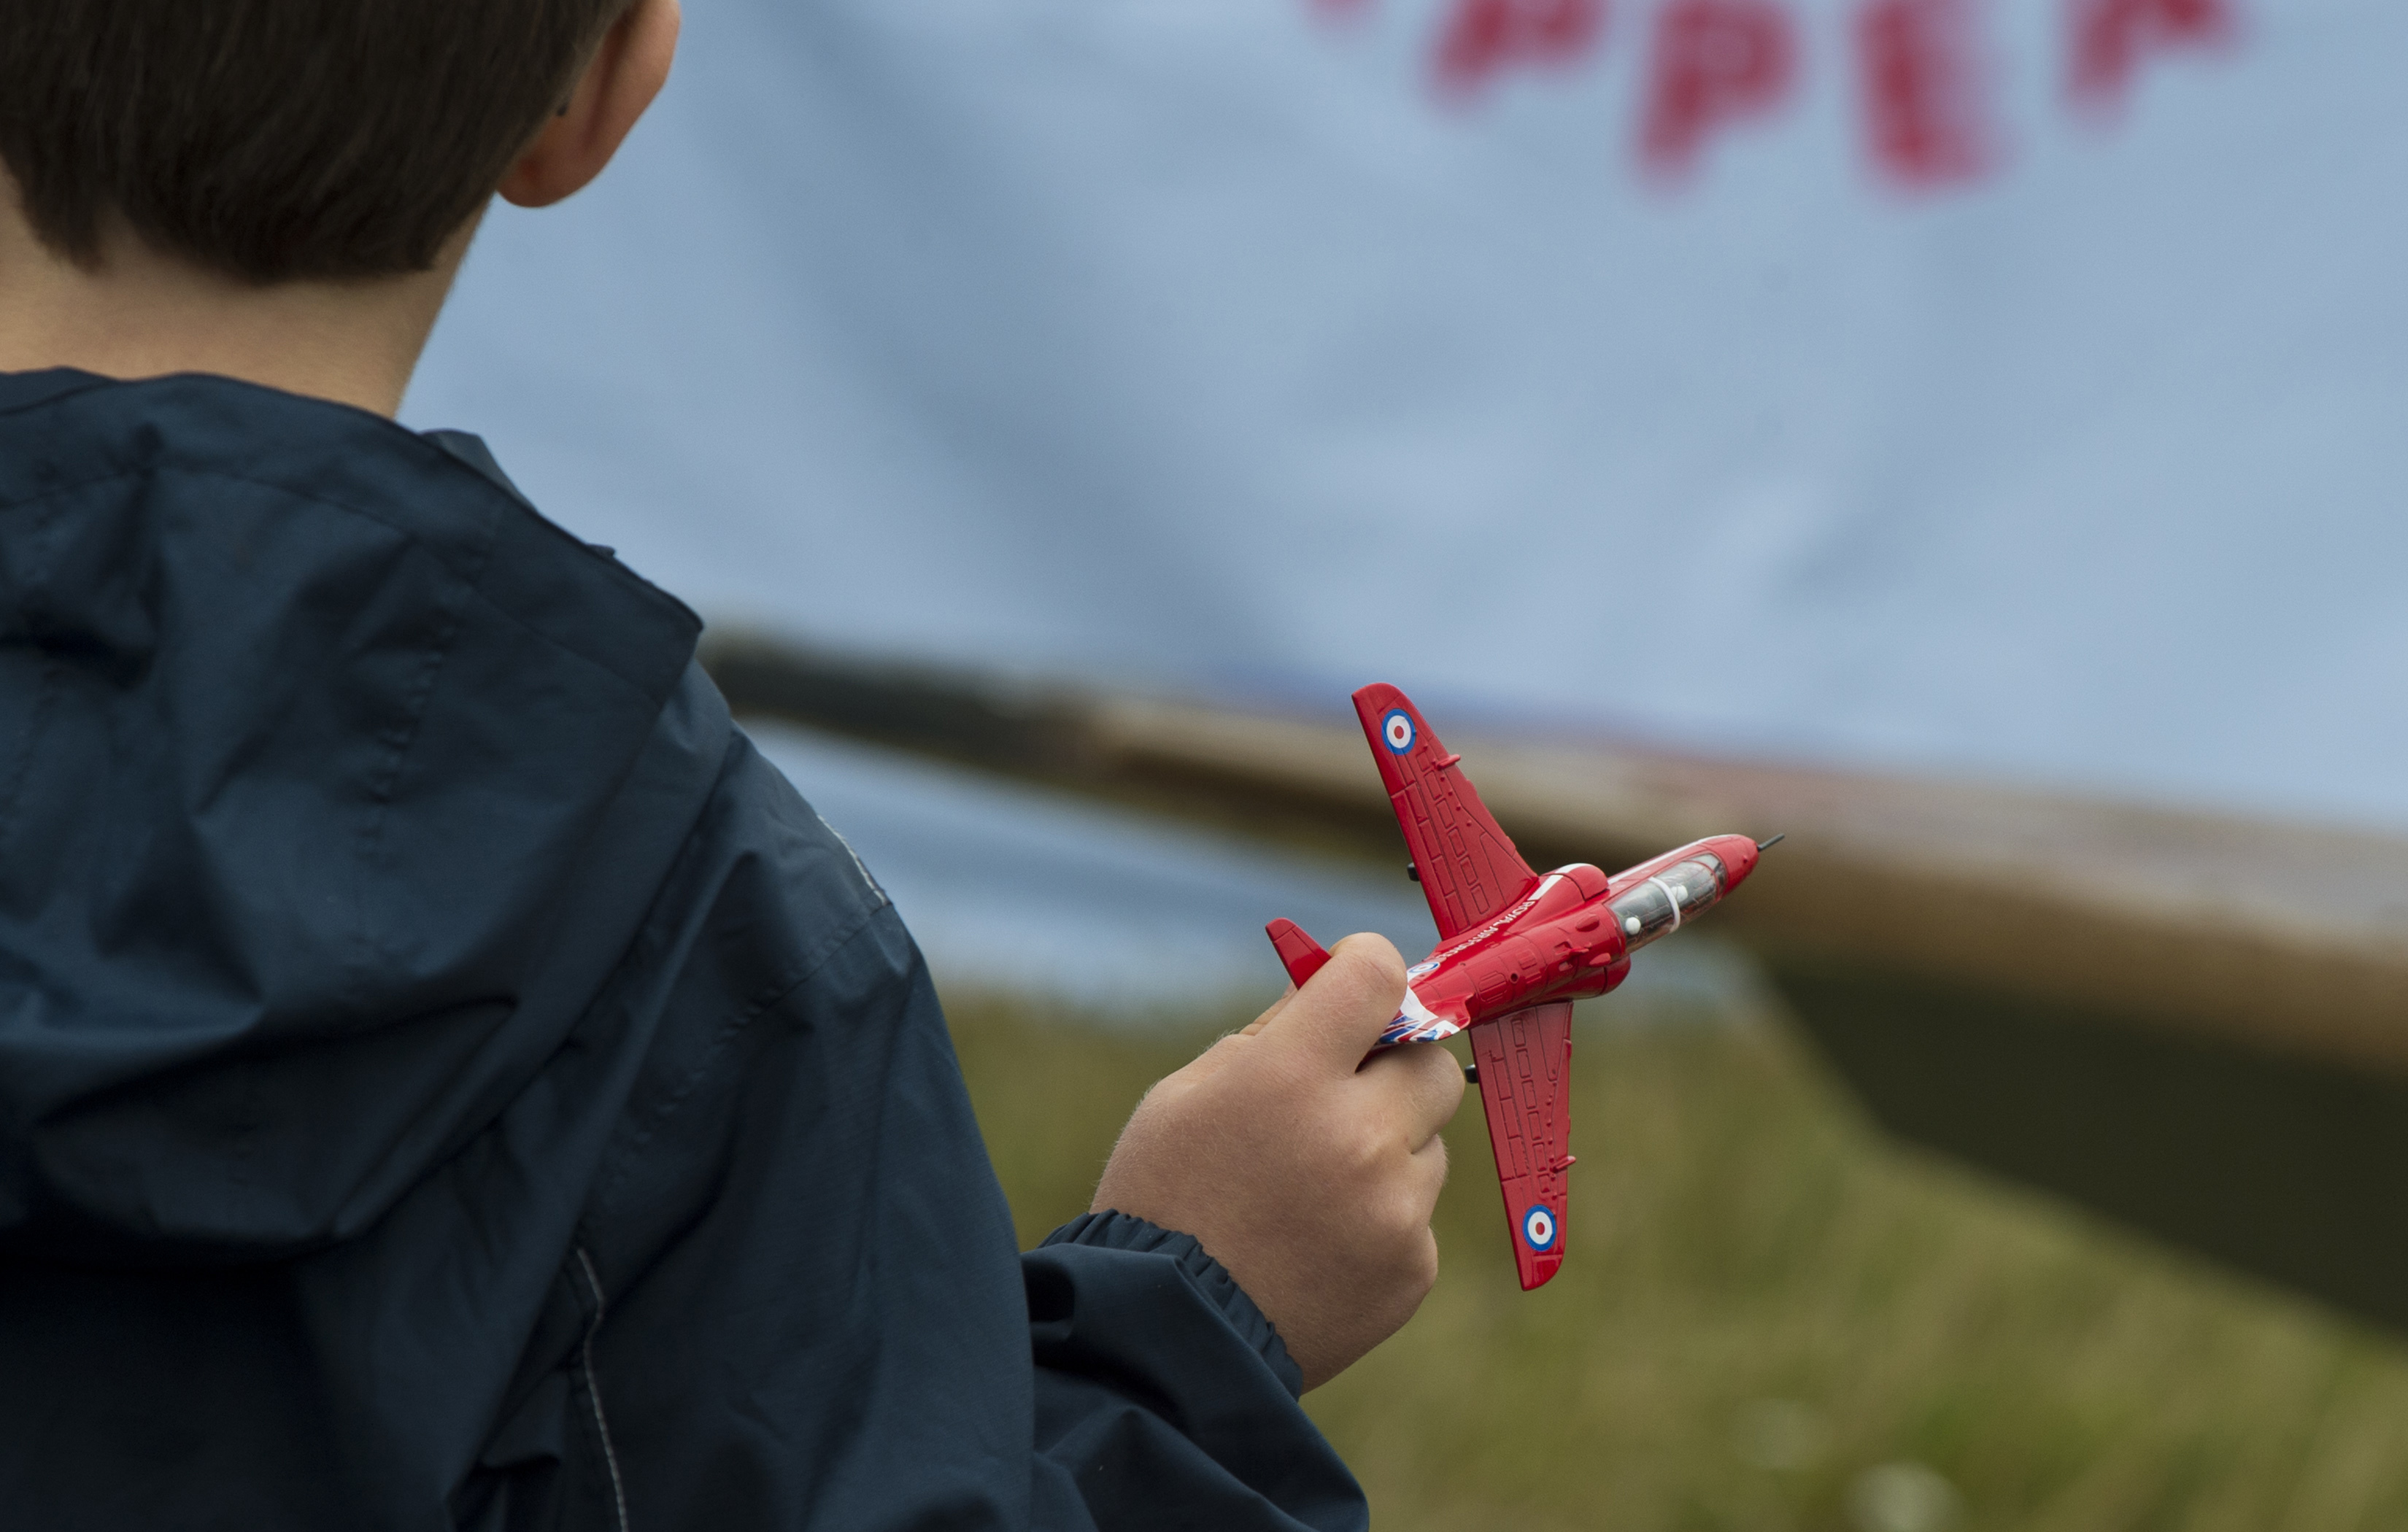 FAIRFORD, United Kingdom – A young boy flies his toy Royal Air Force Red Arrow Hawk T1 during the 2017 Royal International Air Tattoo (RIAT) located at RAF Fairford, United Kingdom, on July 15, 2017. This year commemorates the U.S. Air Force's 70th Anniversary which was highlighted during RIAT by displaying its lineage and advancements in military aircraft. (U.S. Air Force Photo by Tech. Sgt. Brian Kimball)